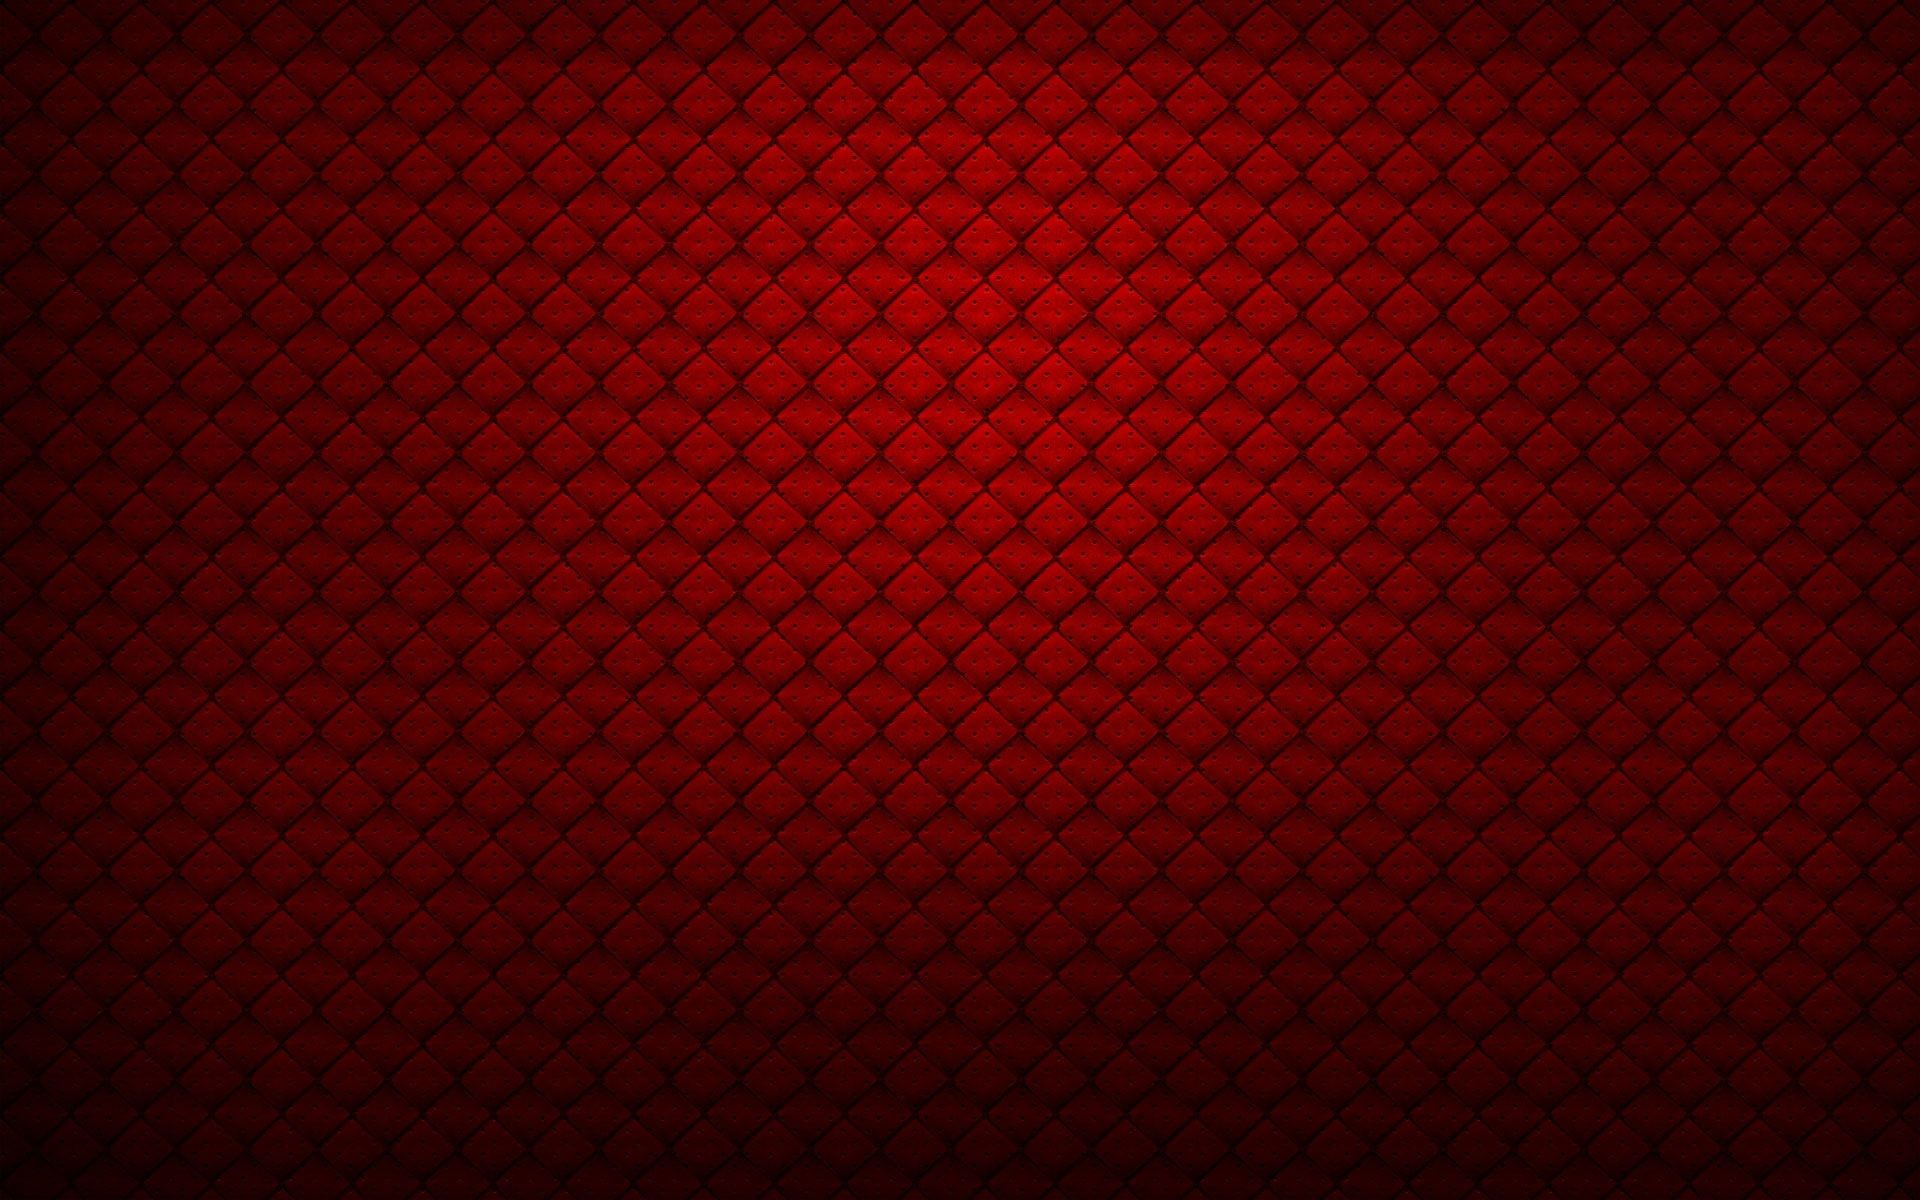 … background – Red Wallpaper 27. Download